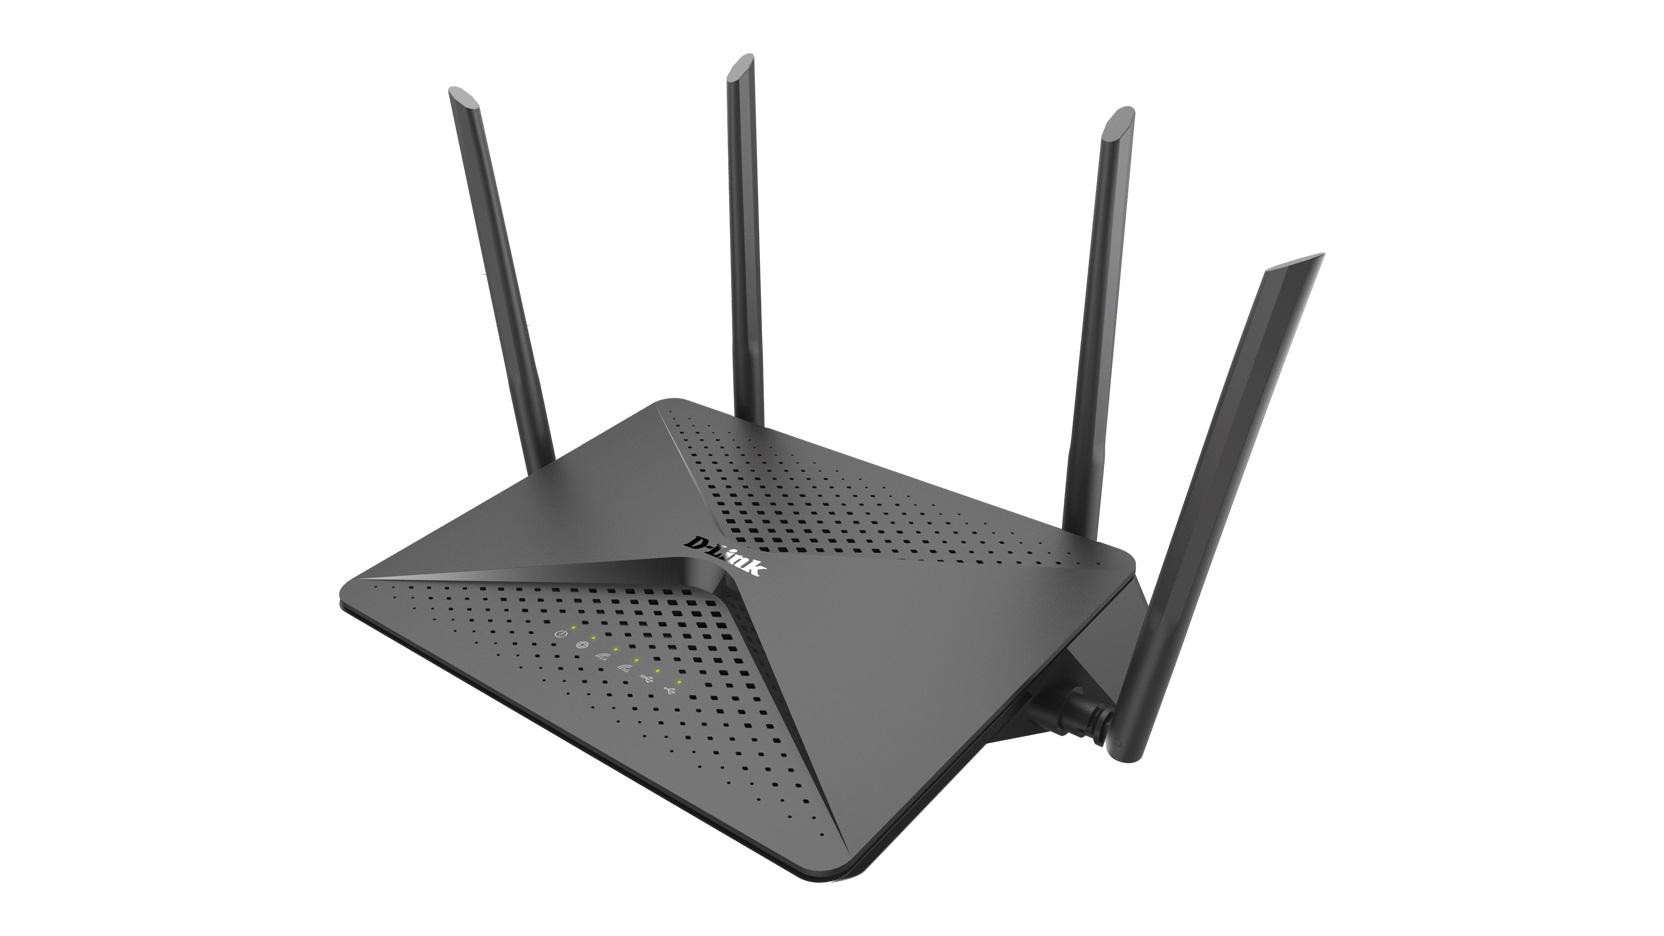 DLINK EXO AC2600 MU-MIMO Wi-Fi Router, DIR-882, EEE 802.11 ac/n/g/b/a wireless LAN, 1* USB 2.0 port, 1*  Super Speed USB 3.0 port, 4* 10/100/1000 Gigabit Ethernet LAN ports, 10/100/1000 Gigabit Ethernet WAN port, Four external antennas, 2.4 GHz: Up to 800 Mbps/ 5 GHz: Up to 1,733 Mbps, compatibil - imaginea 1